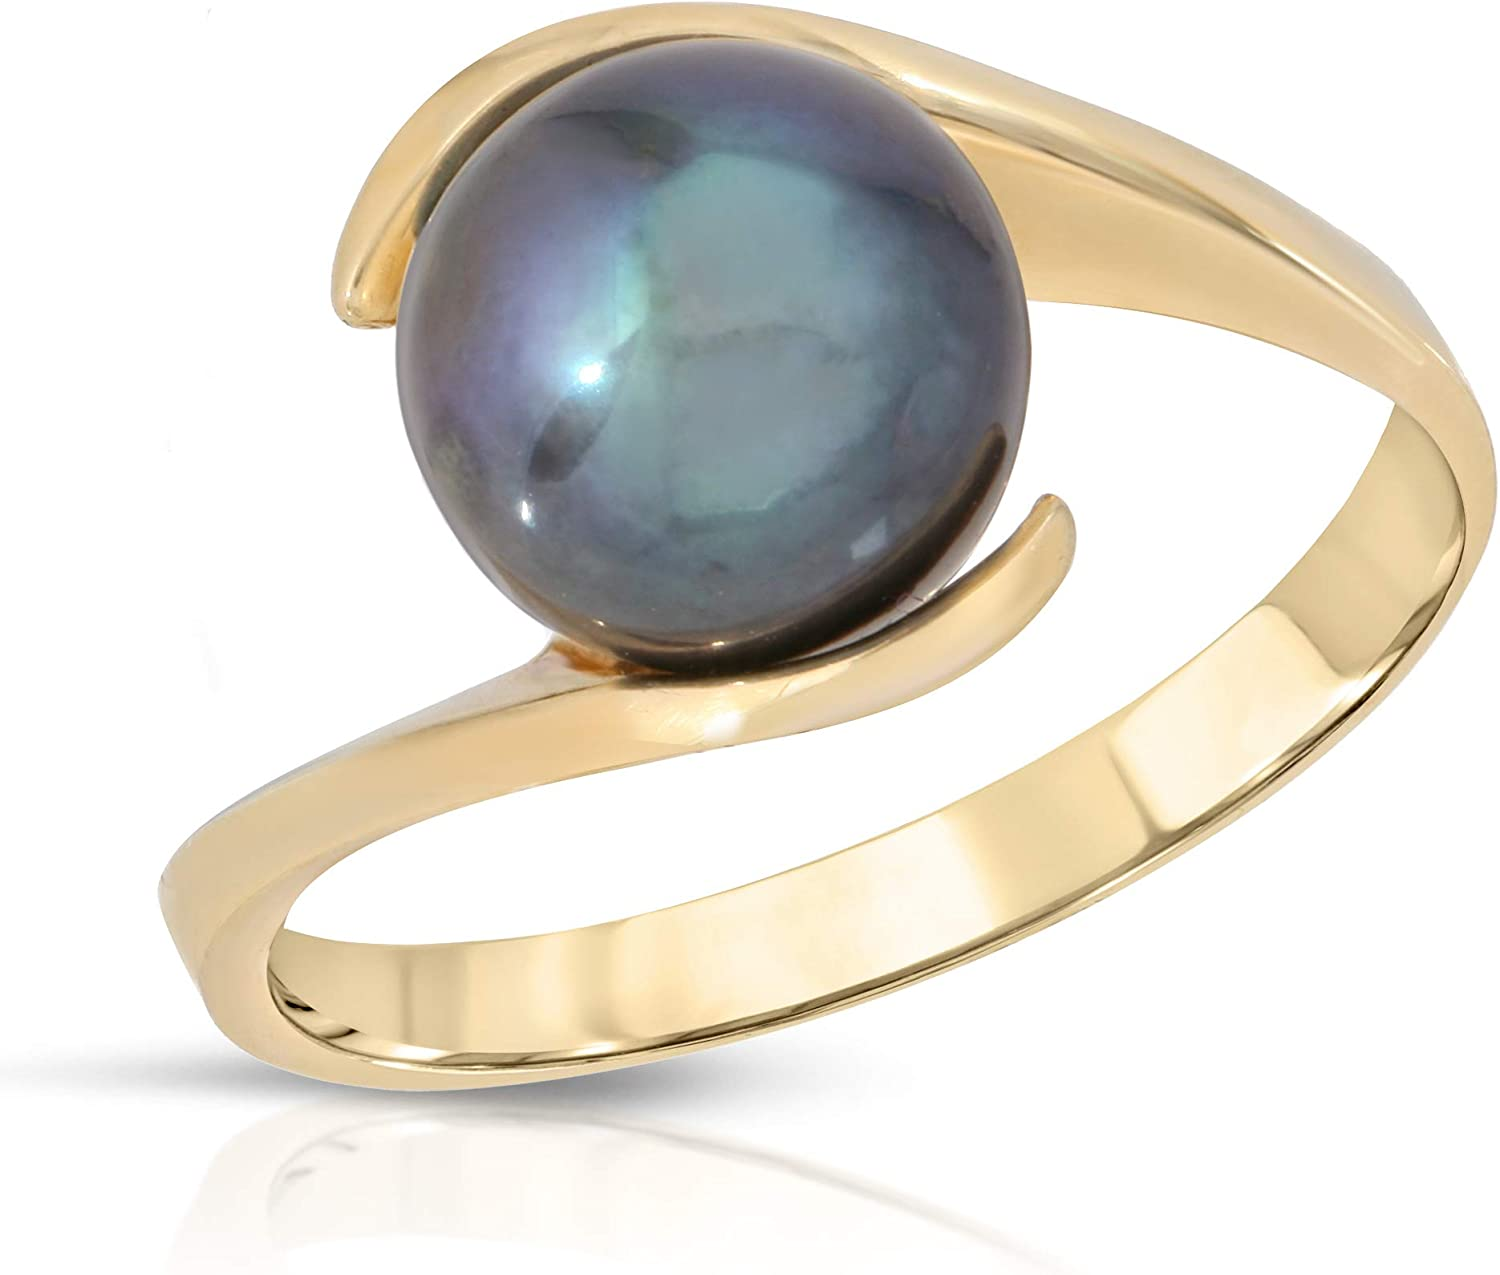 Regalia Cultured Pearl Ring 14K Yellow Gold - Size 7